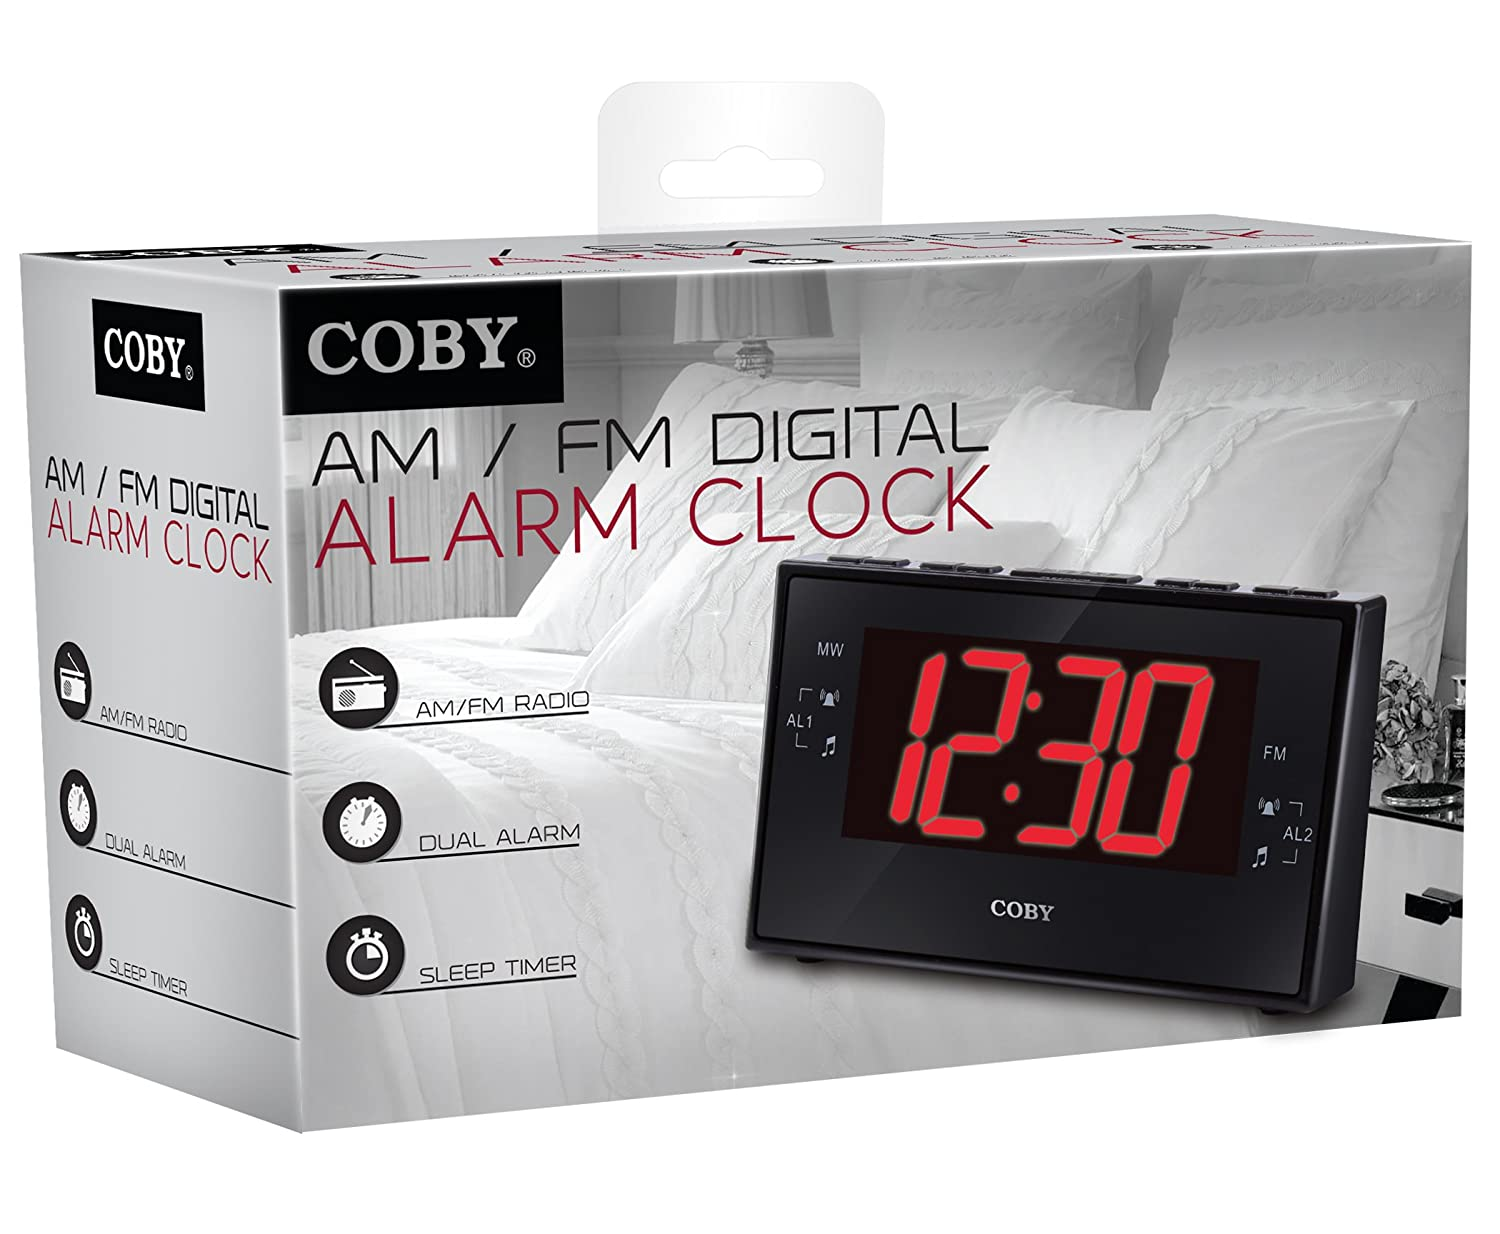 Coby CBCR-102-BLK Digital Alarm Clock with AM/FM Radio and Dual Alarm (Black)